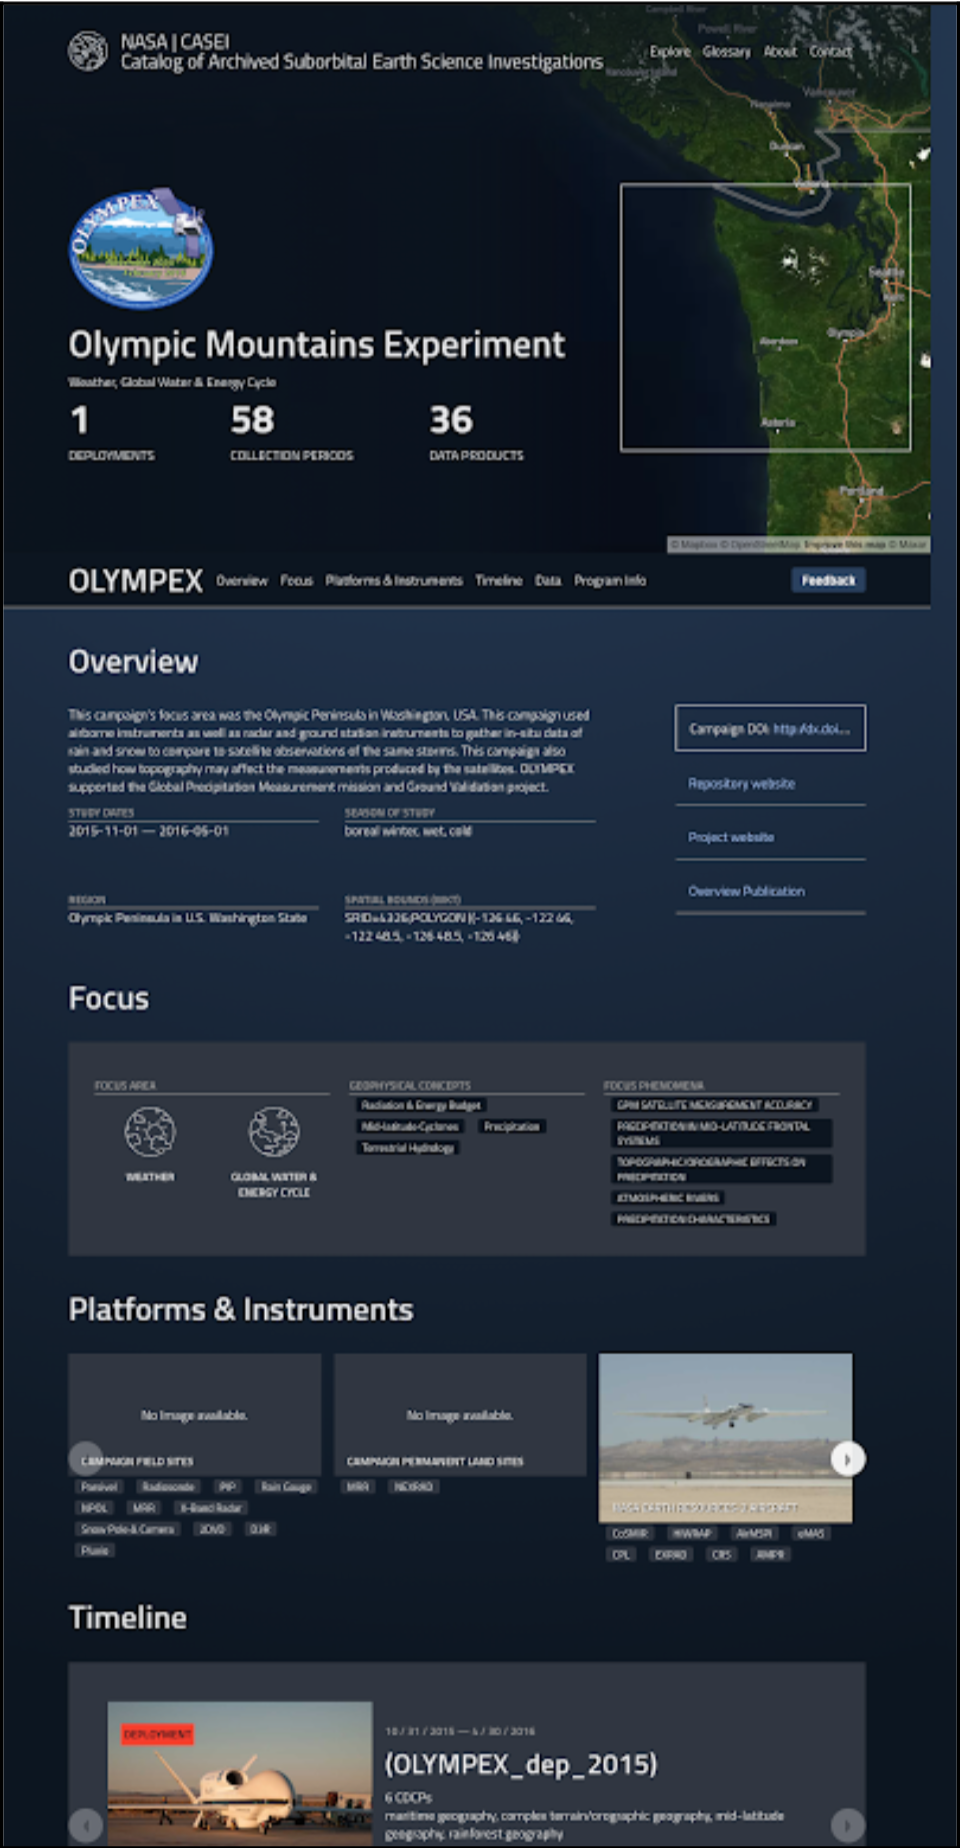 Screenshot of CASEI campaign page showing sections with specific information about the campaign.